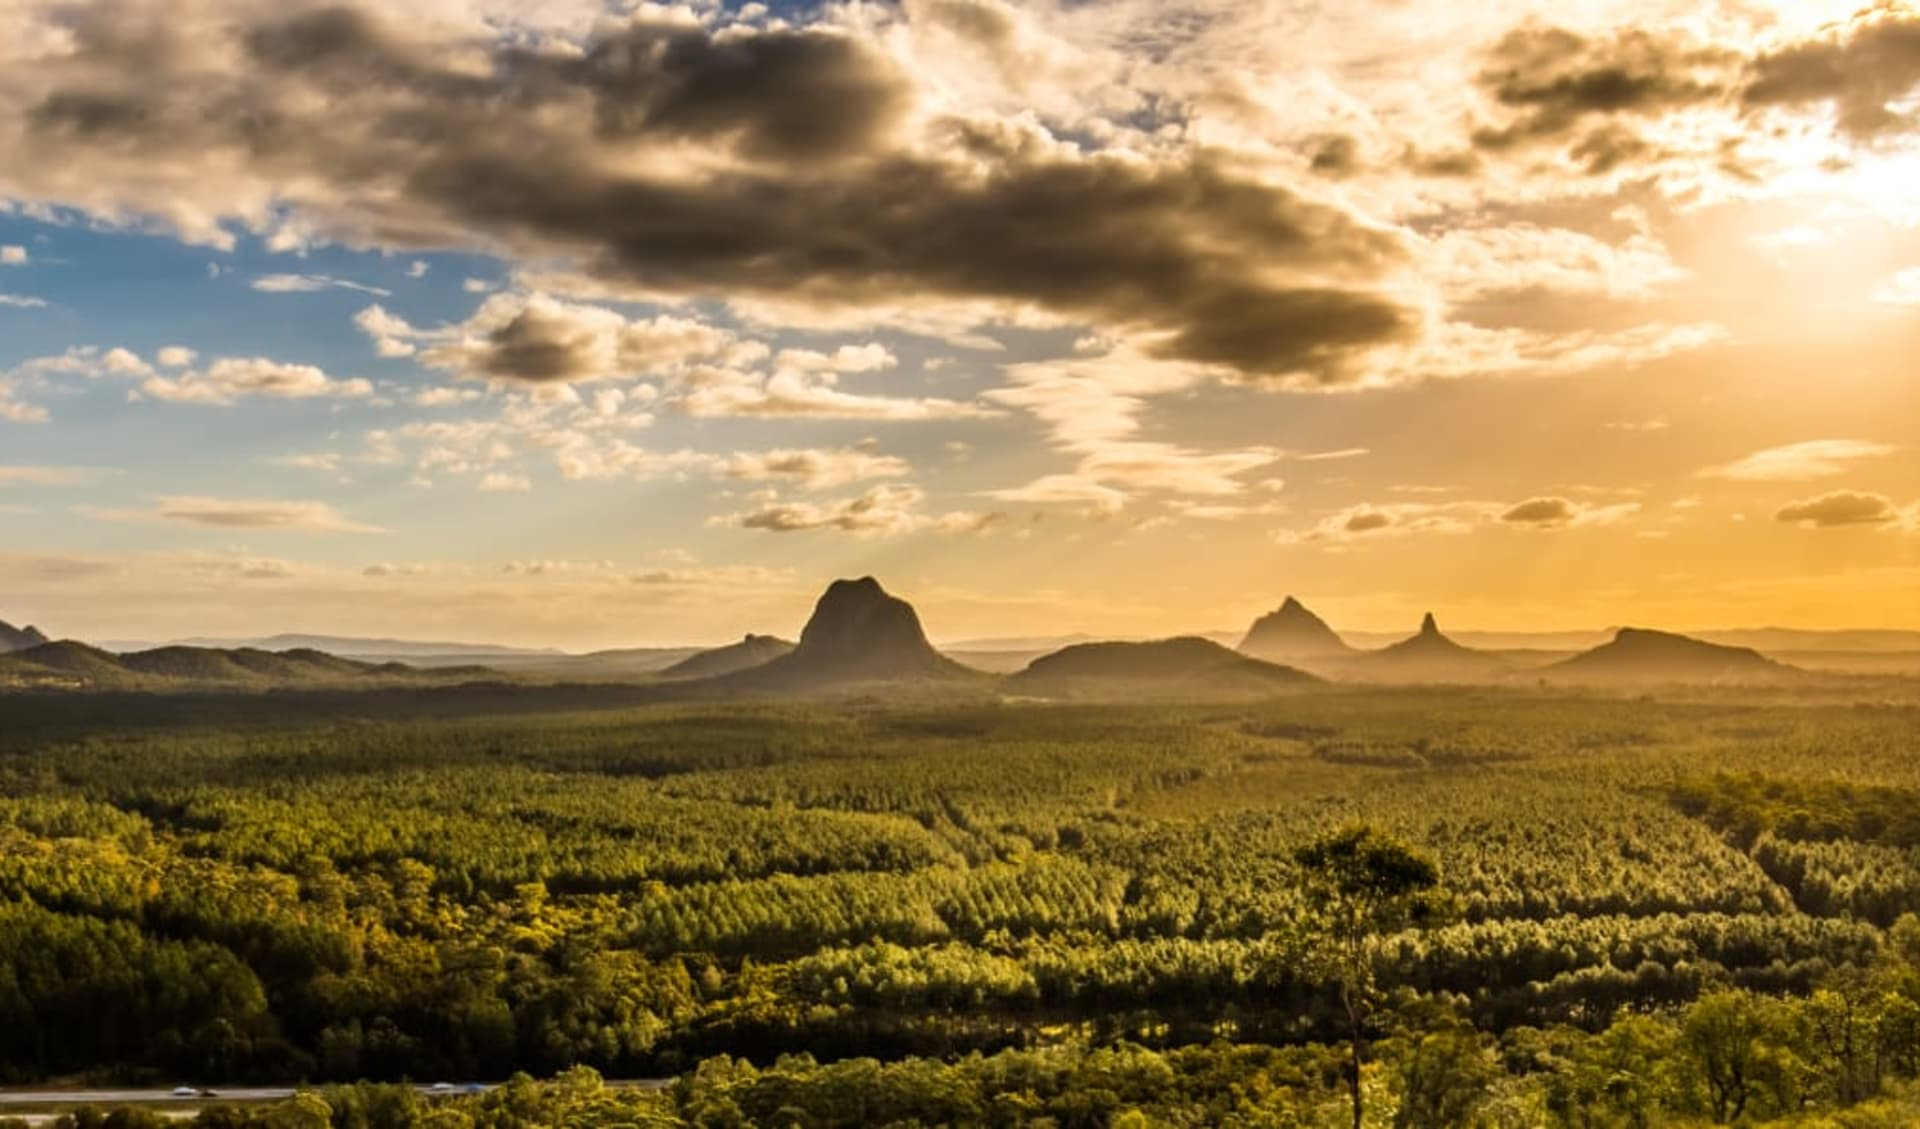 Glasshouse Mountains Ecolodge in Glass House Mountains: shutterstock_1105874996_Glasshouse Mountains_Panorama